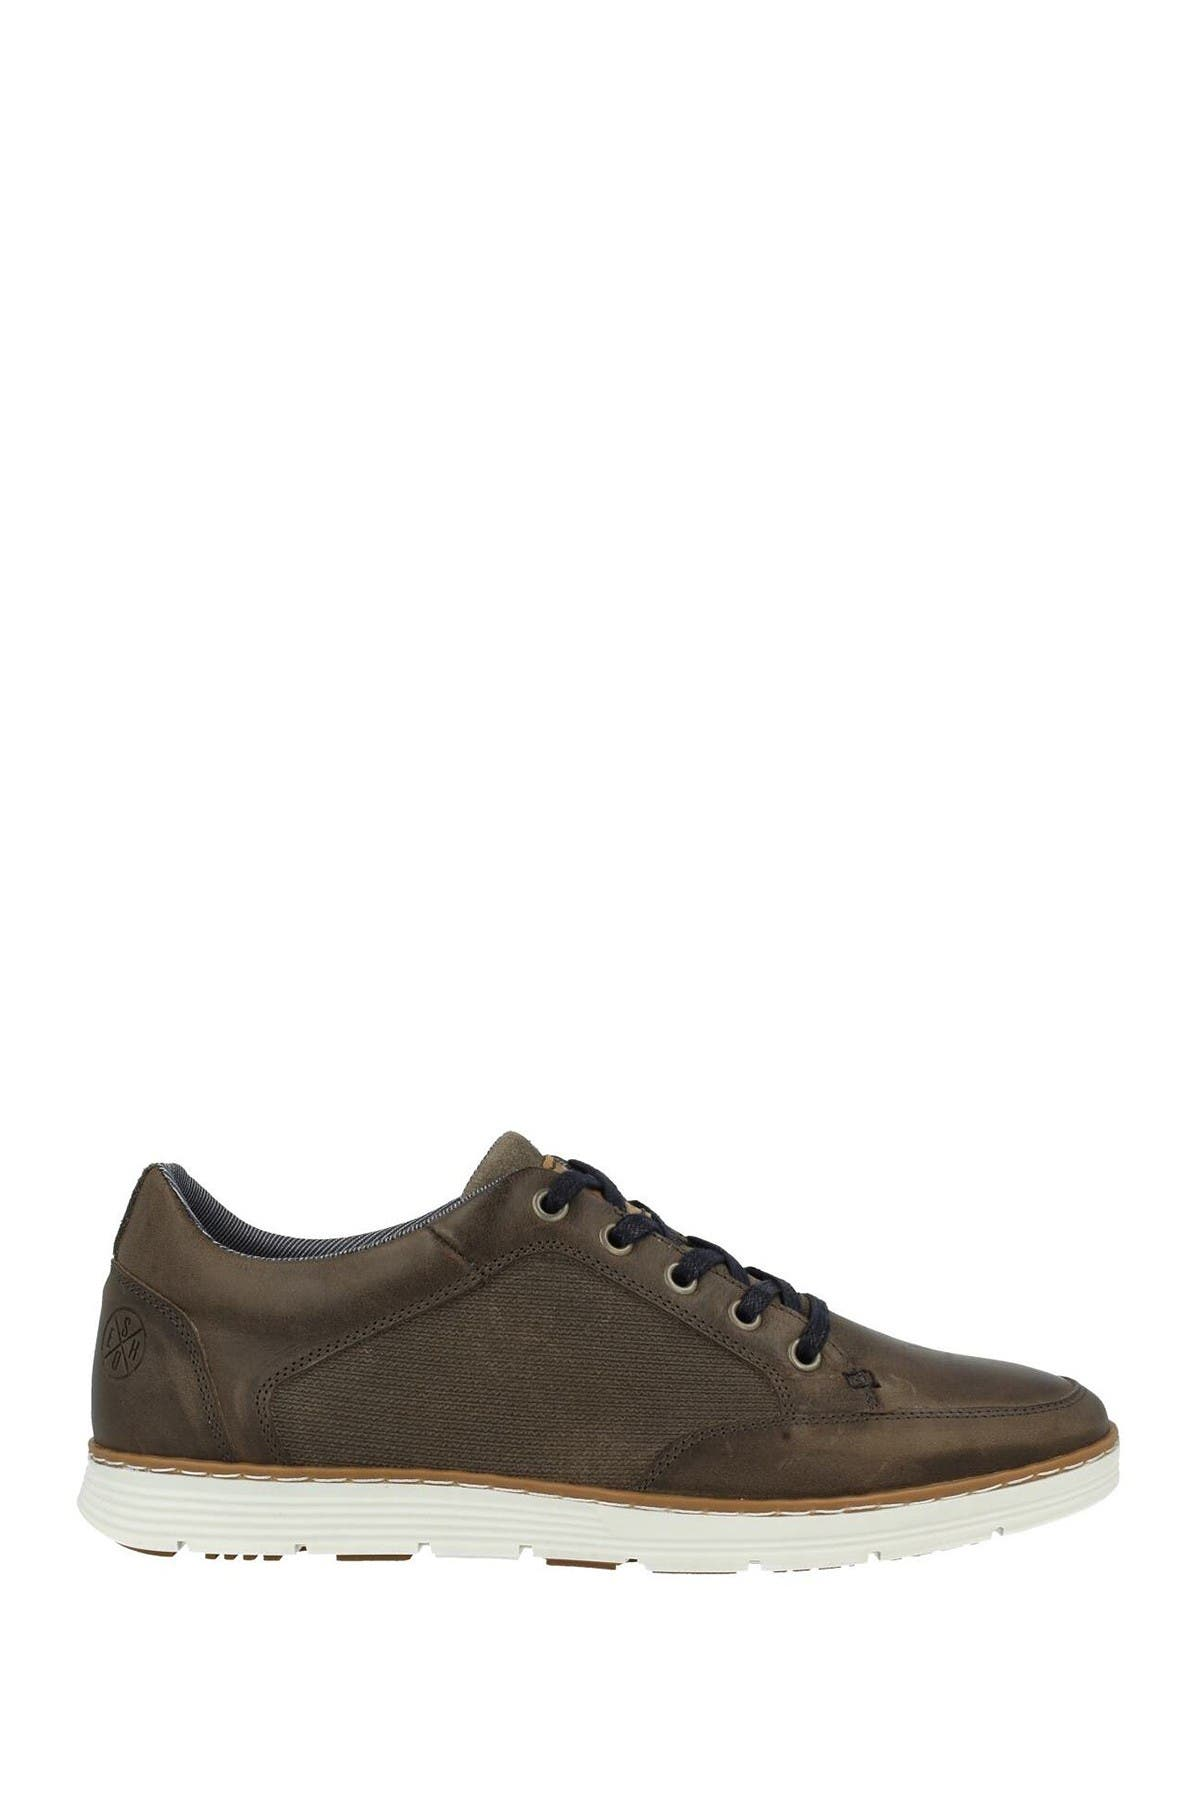 Image of Bullboxer Leather Derby Sneaker